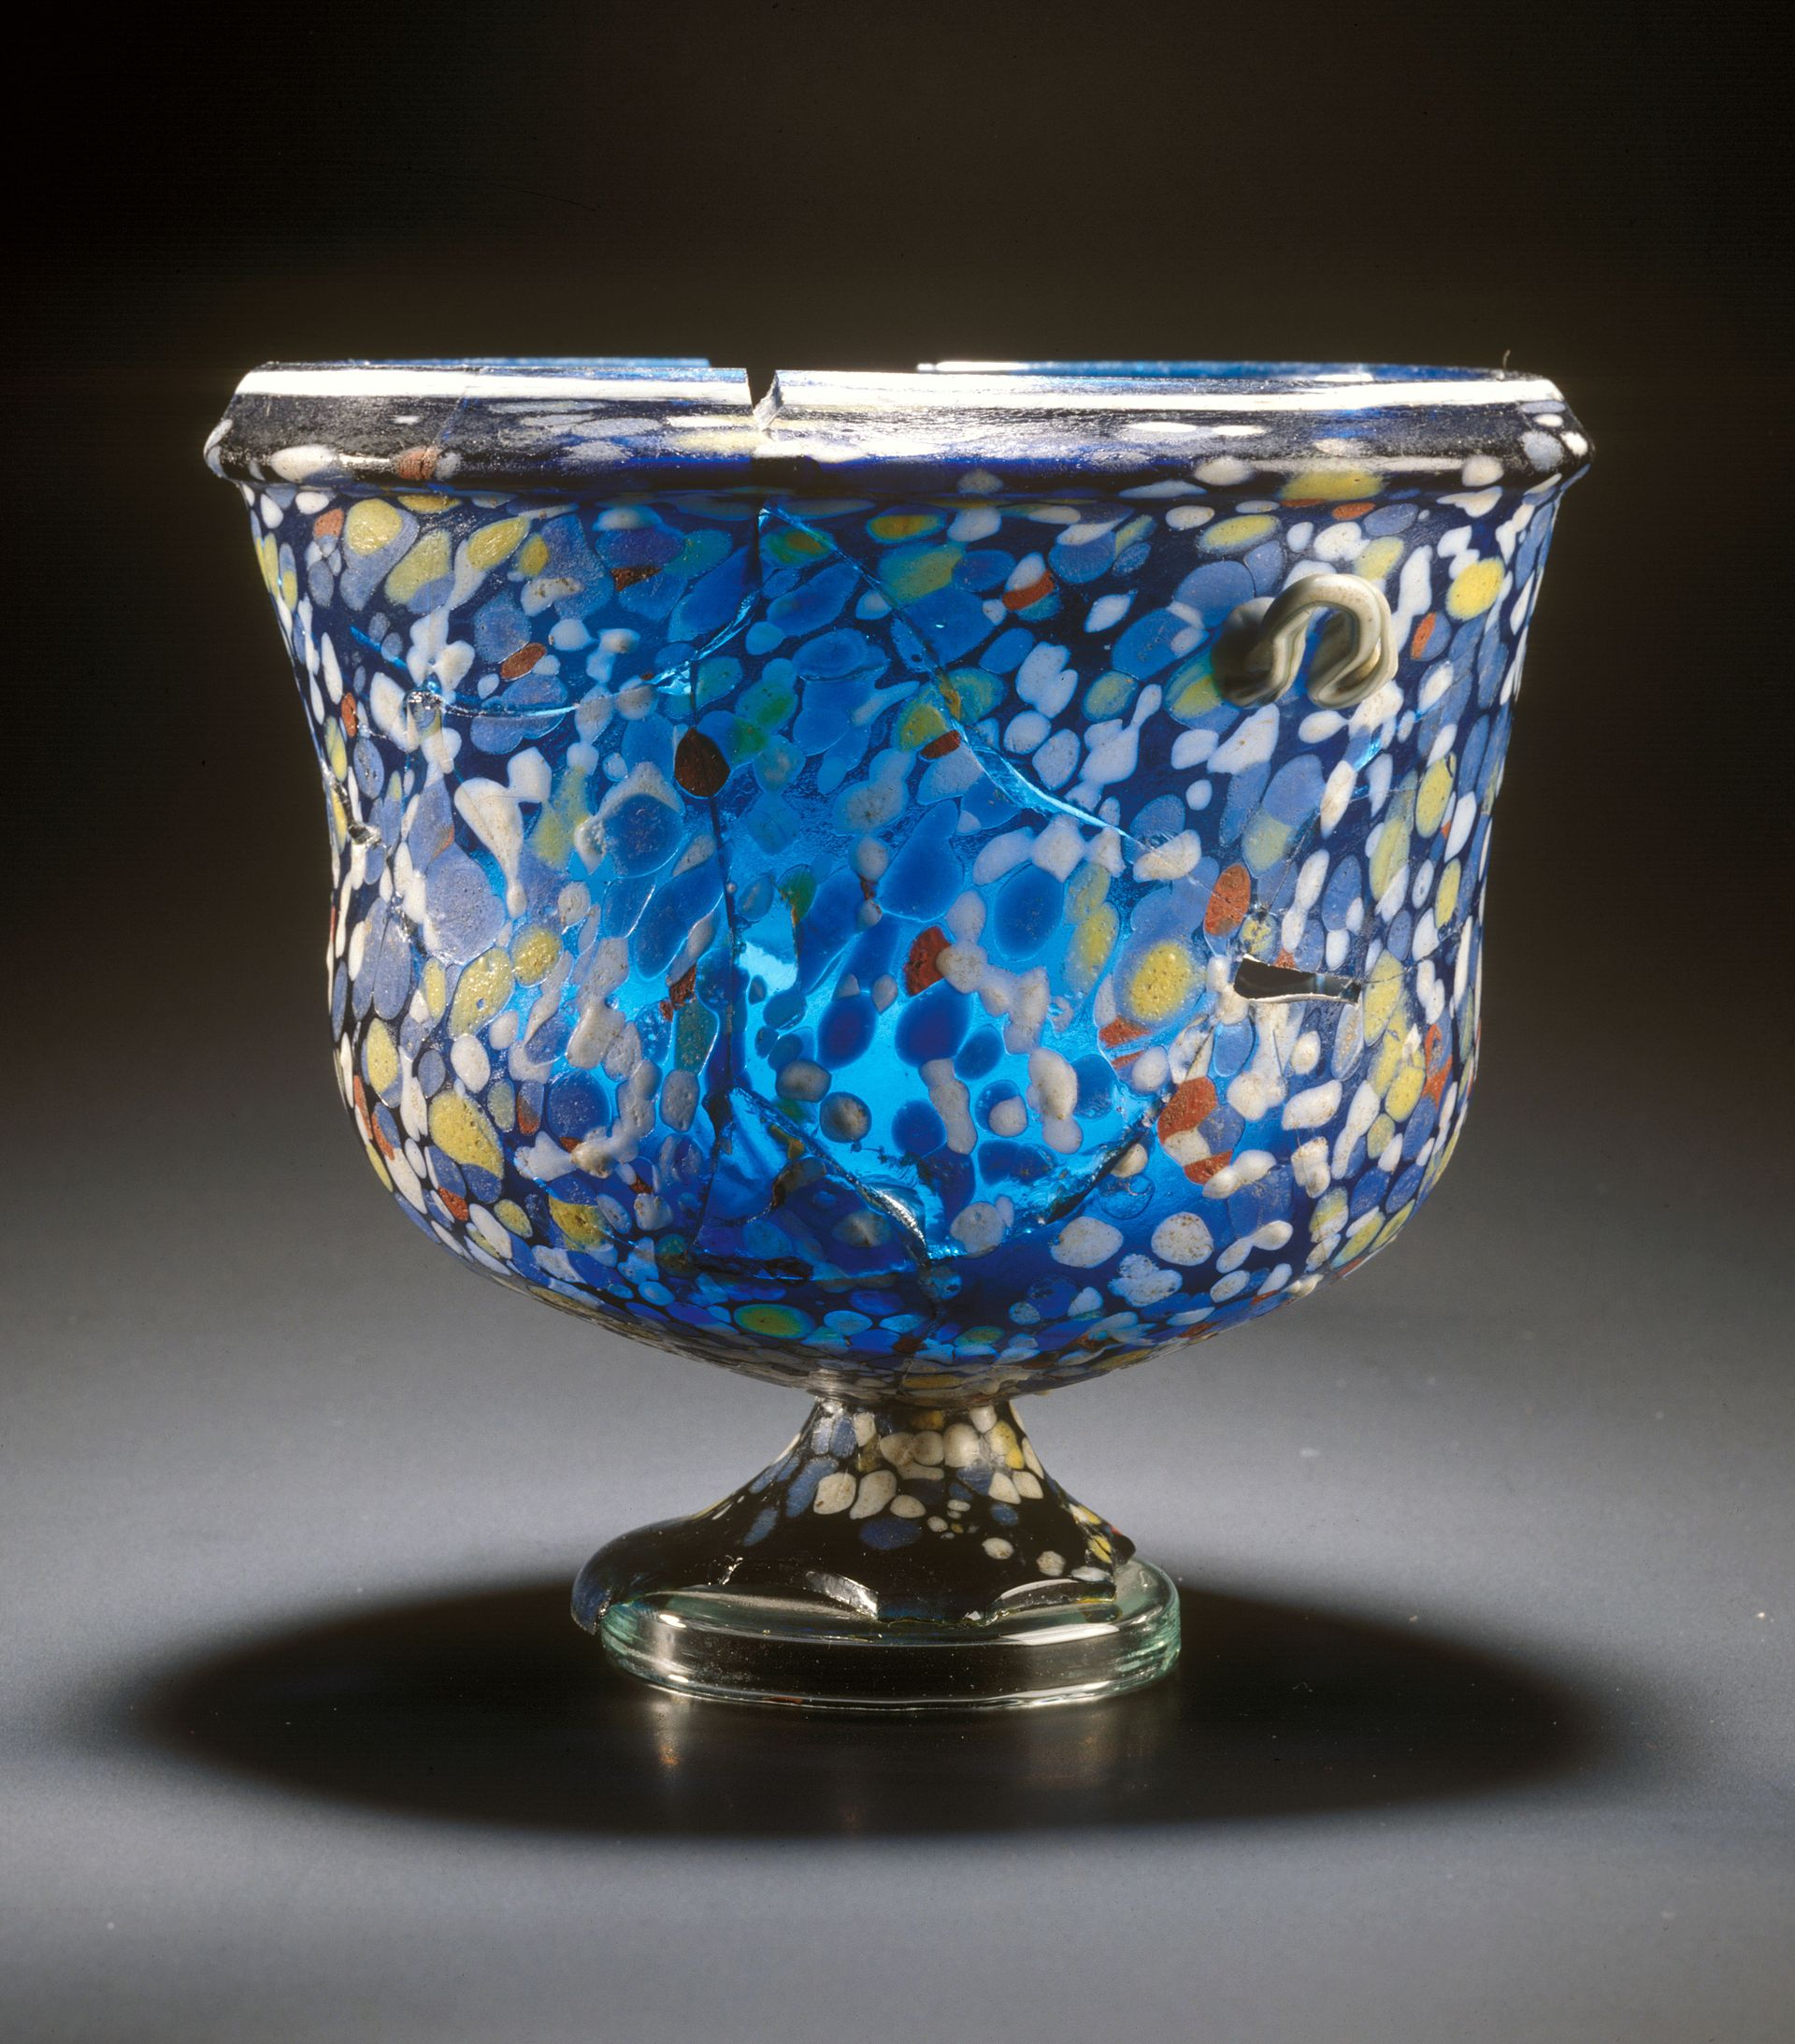 Blown Glass Decorative Bowls Armadale